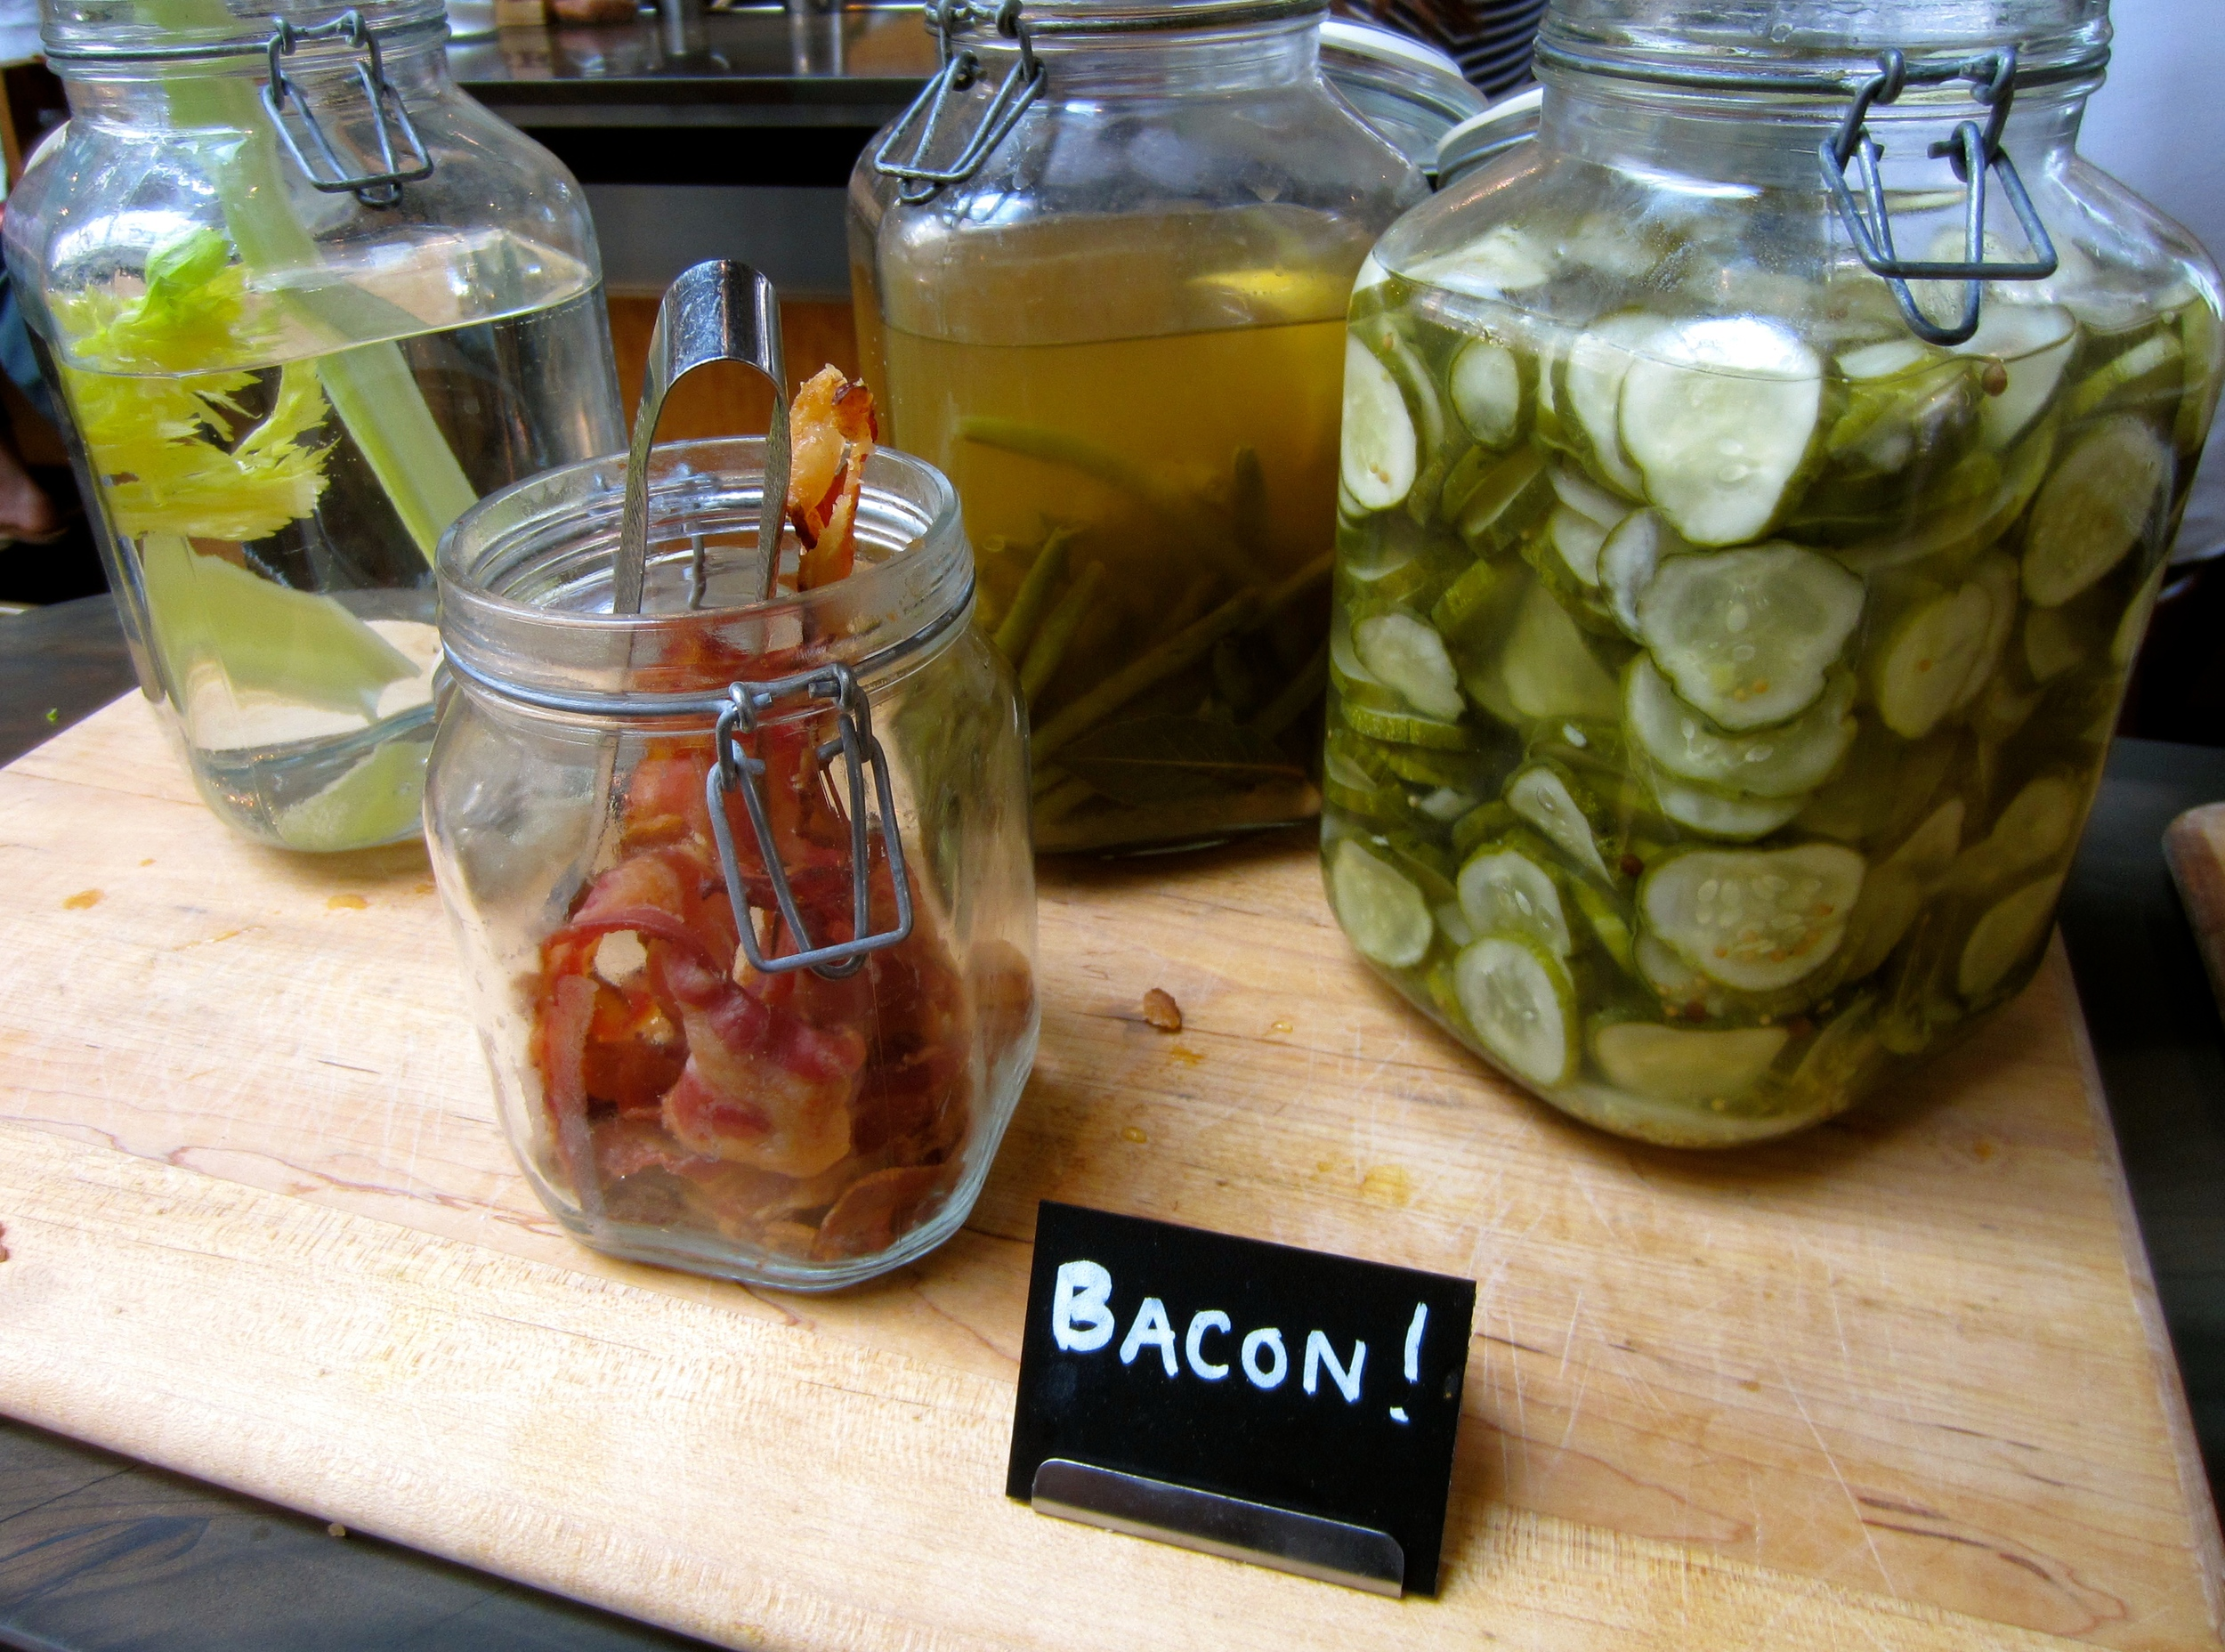 celery, pickled green beans, dill pickles and BACON!